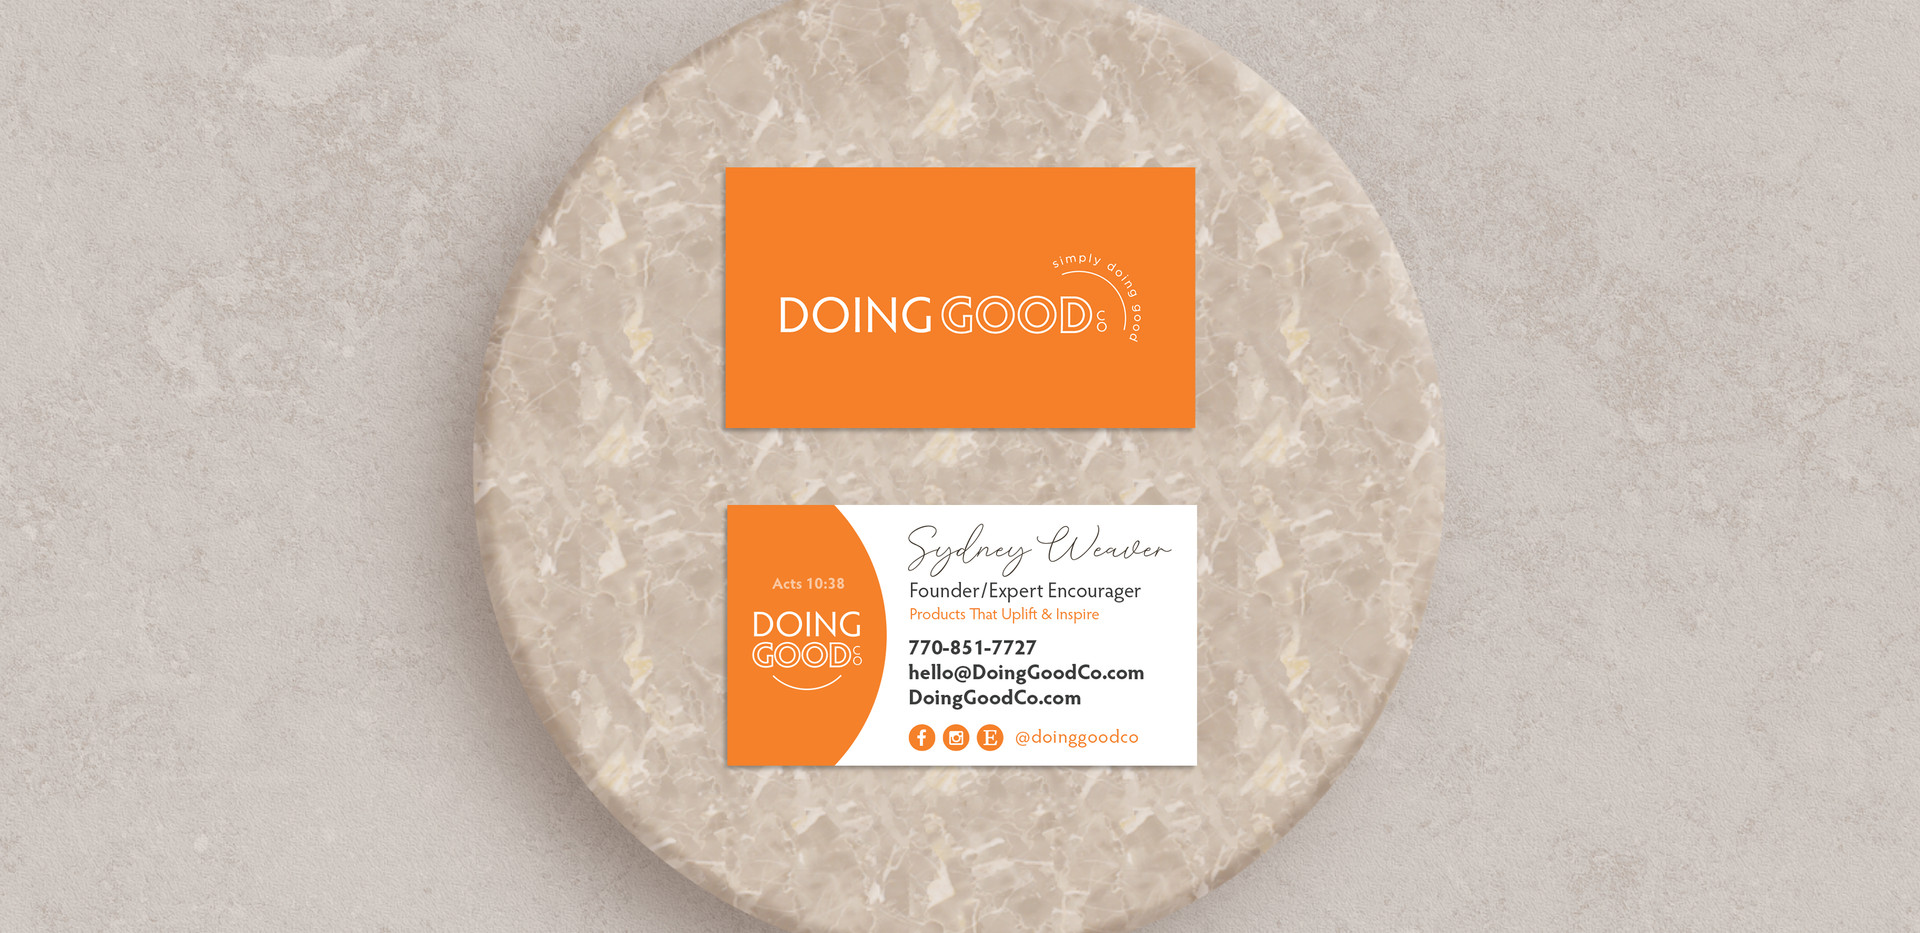 Doing Good Co. Business Cards